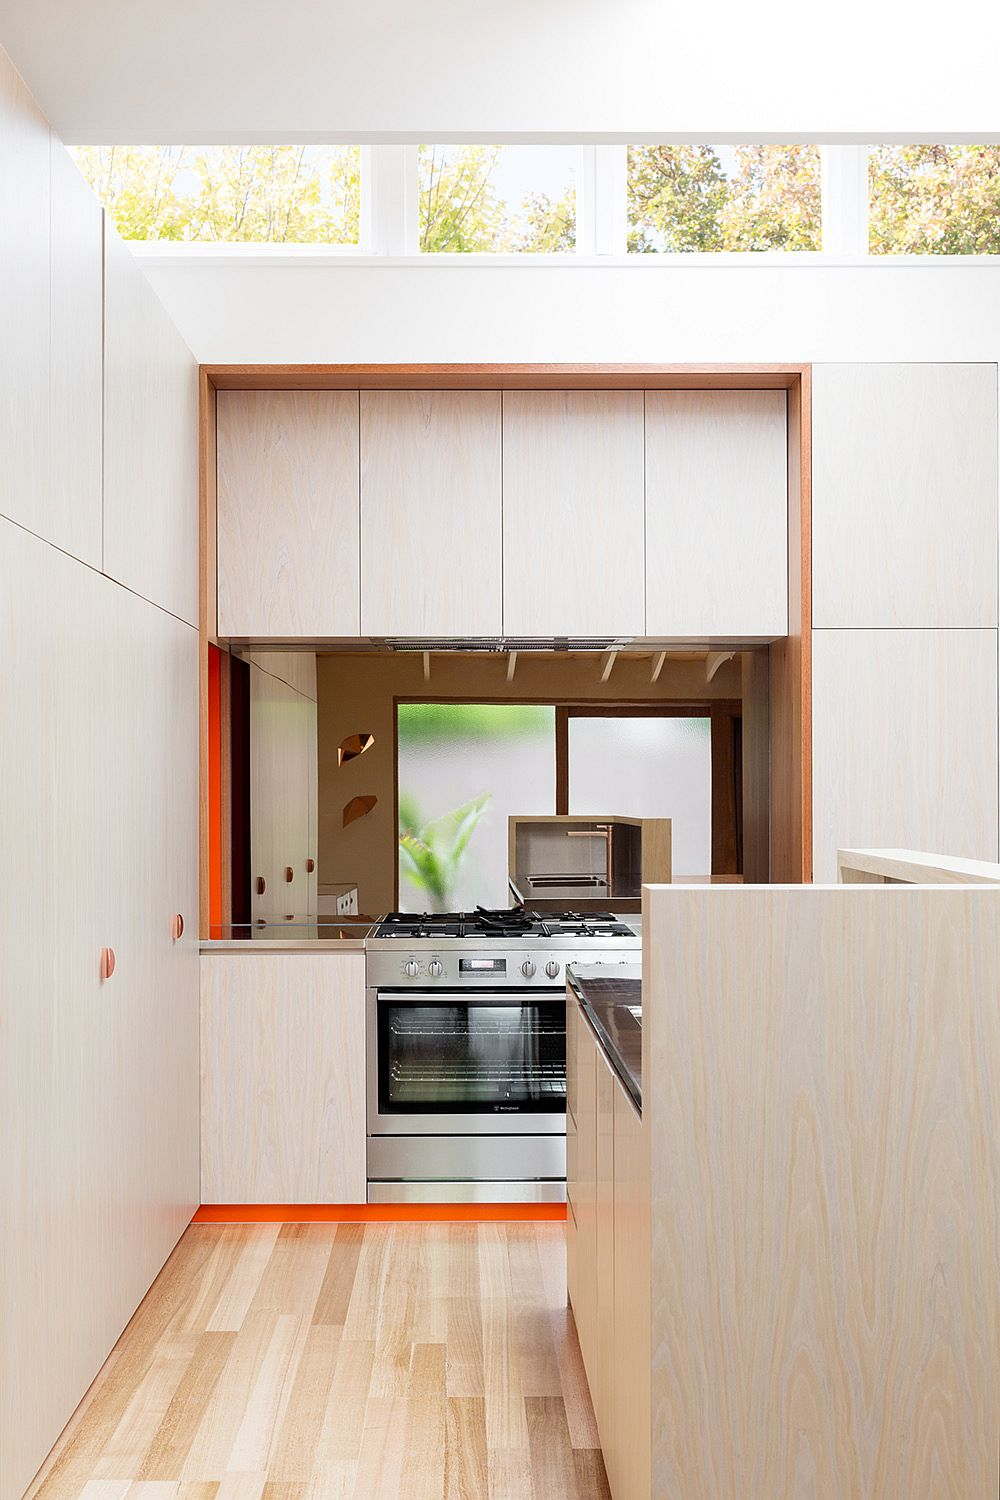 Smart use of clerestory windows to bring light into the kitchen